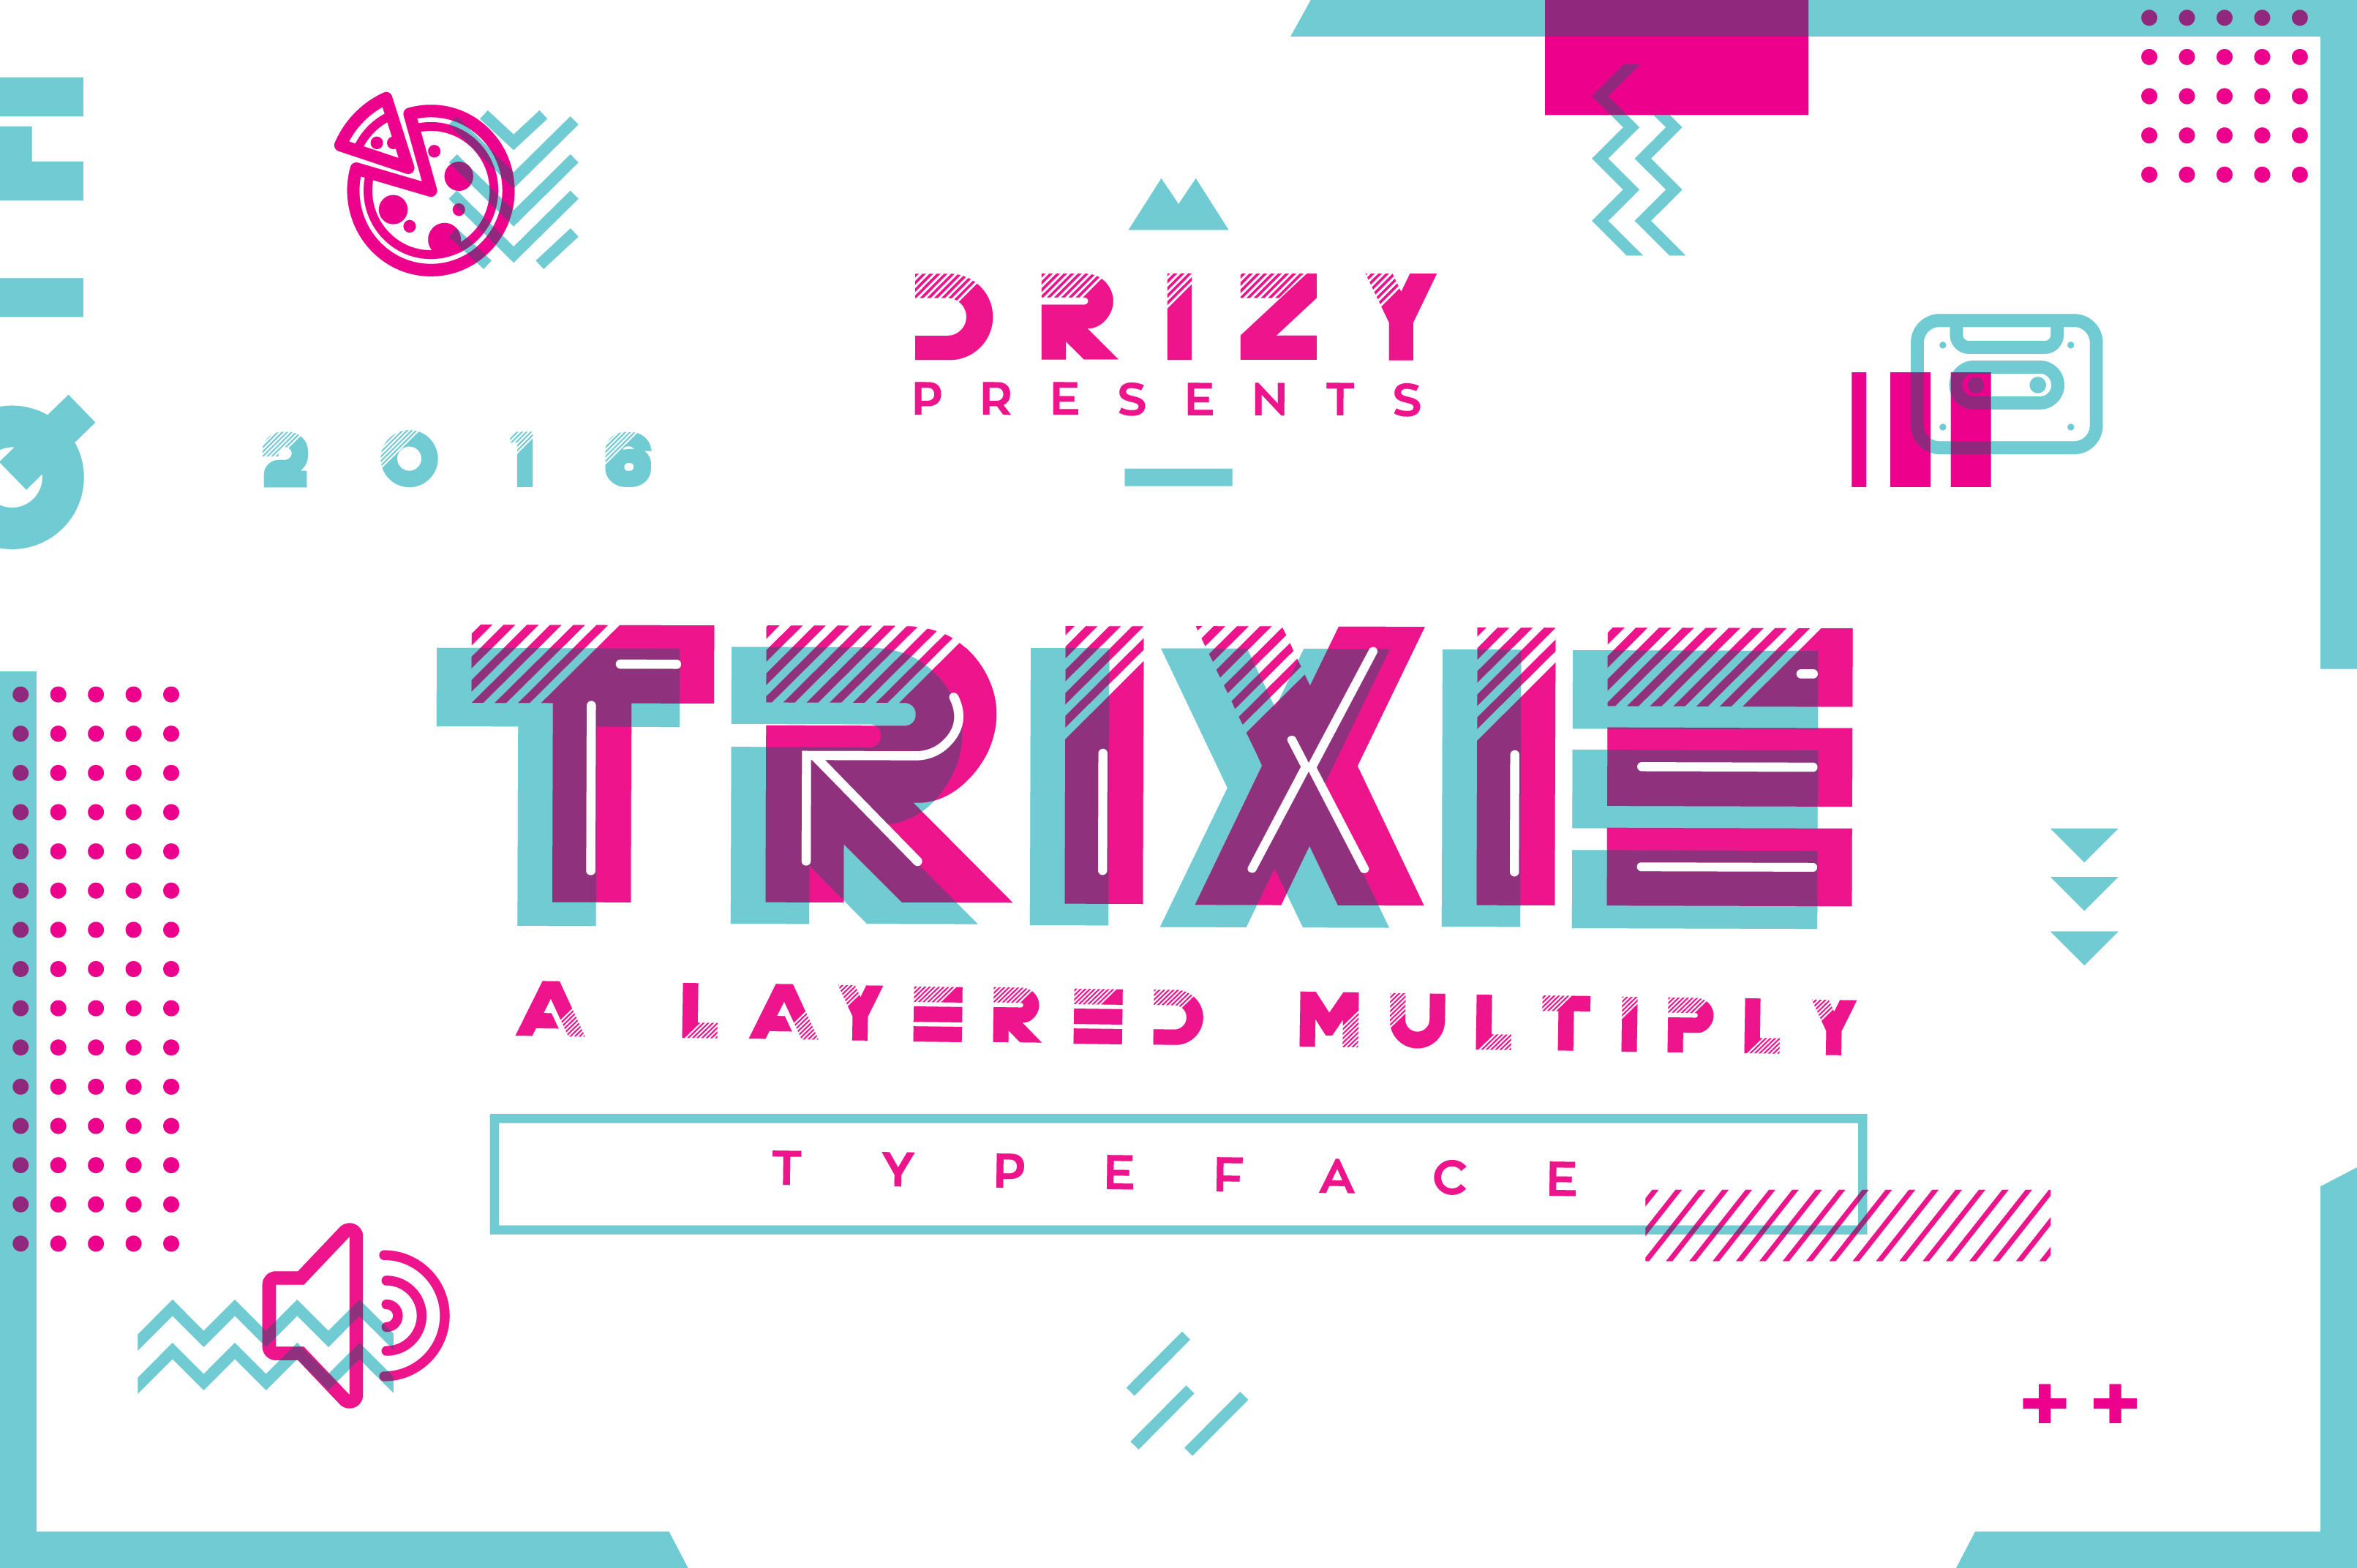 Trixie | A Layered Multiply Typeface Font Big Screenshot